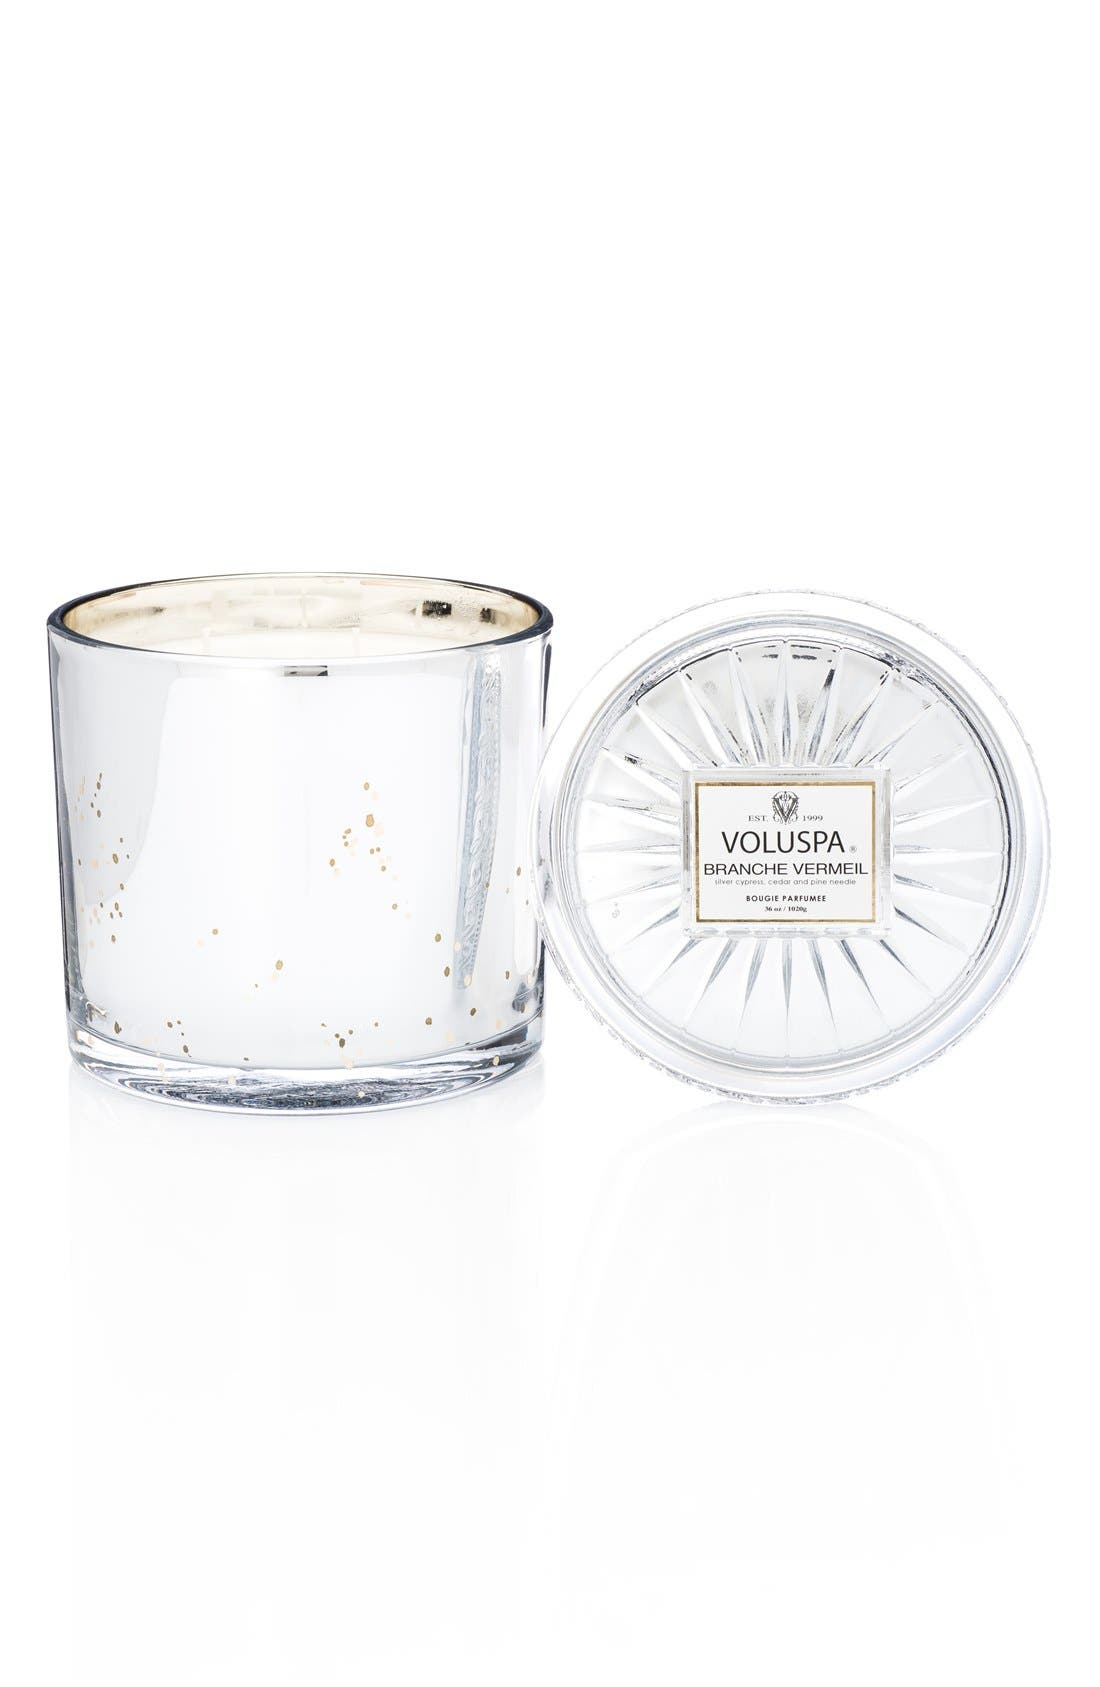 Alternate Image 1 Selected - Voluspa 'Vermeil - Branche Vermeil' Grande Maison Candle